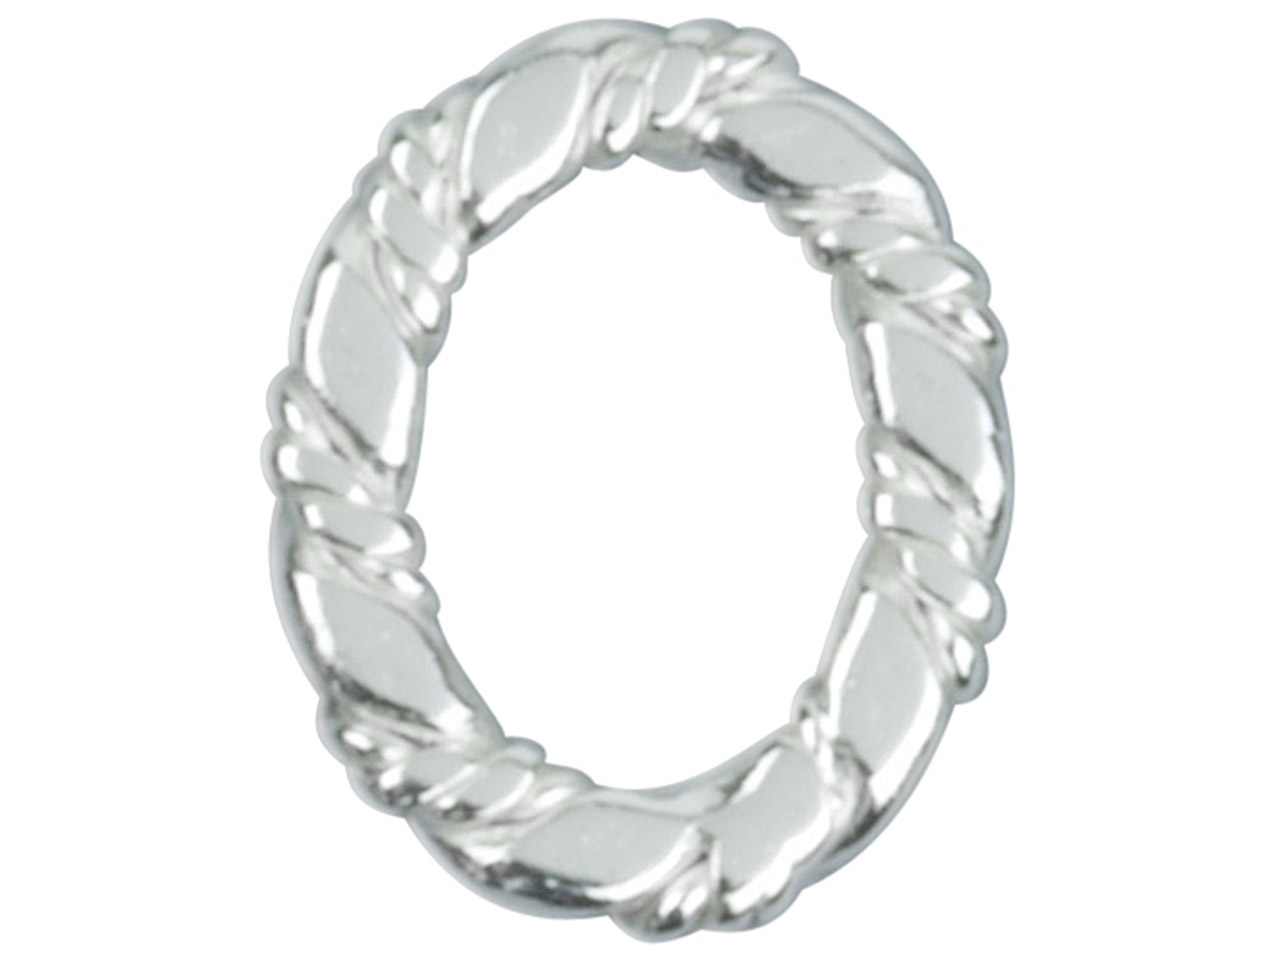 Sterling Silver Spacer Oval, 10mm, Pack of 6, Oval Flat Twist Ring